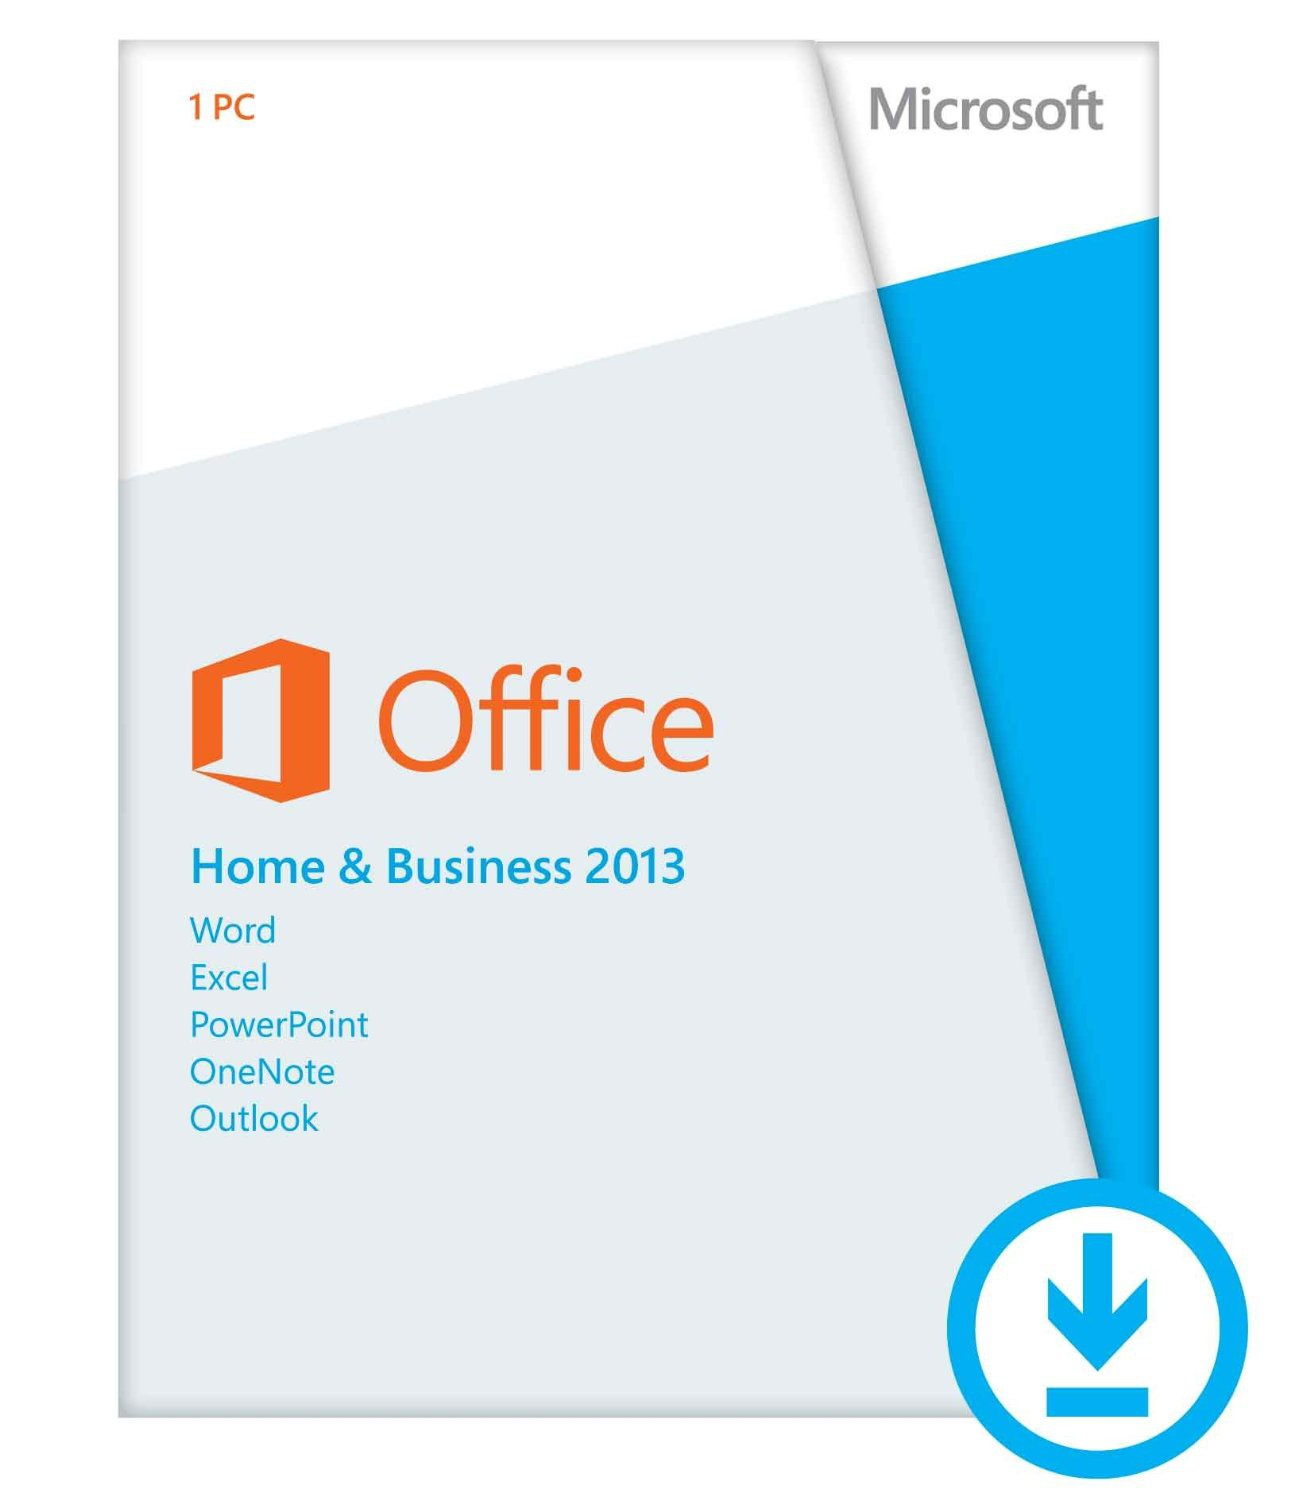 microsoft home office - Ideal.vistalist.co